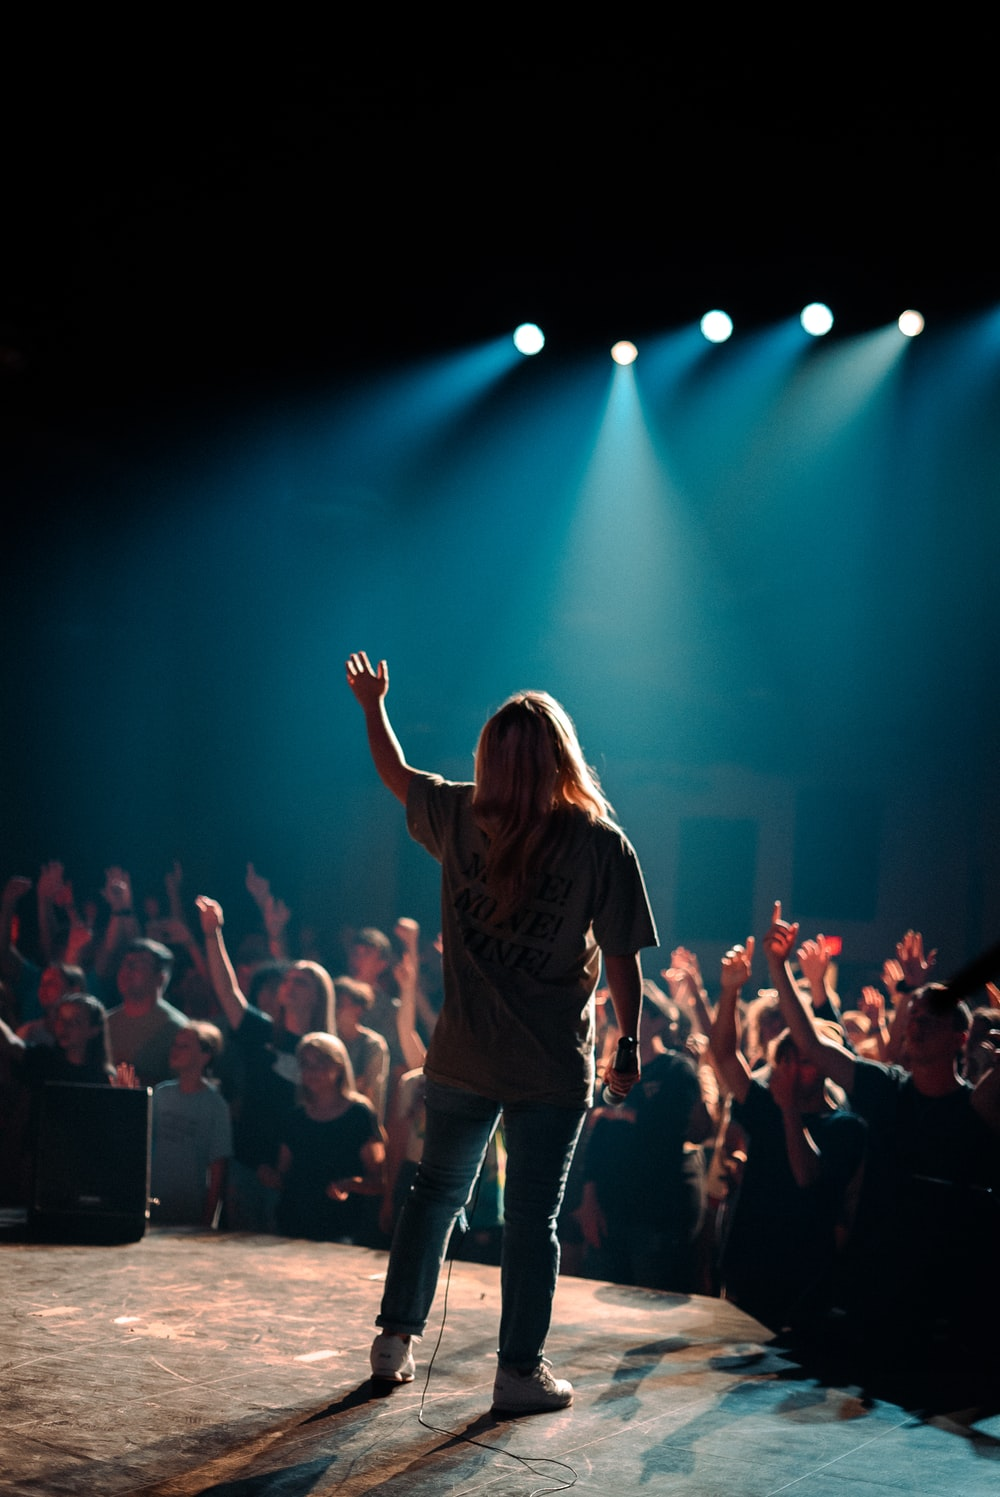 woman in black jacket standing on stage